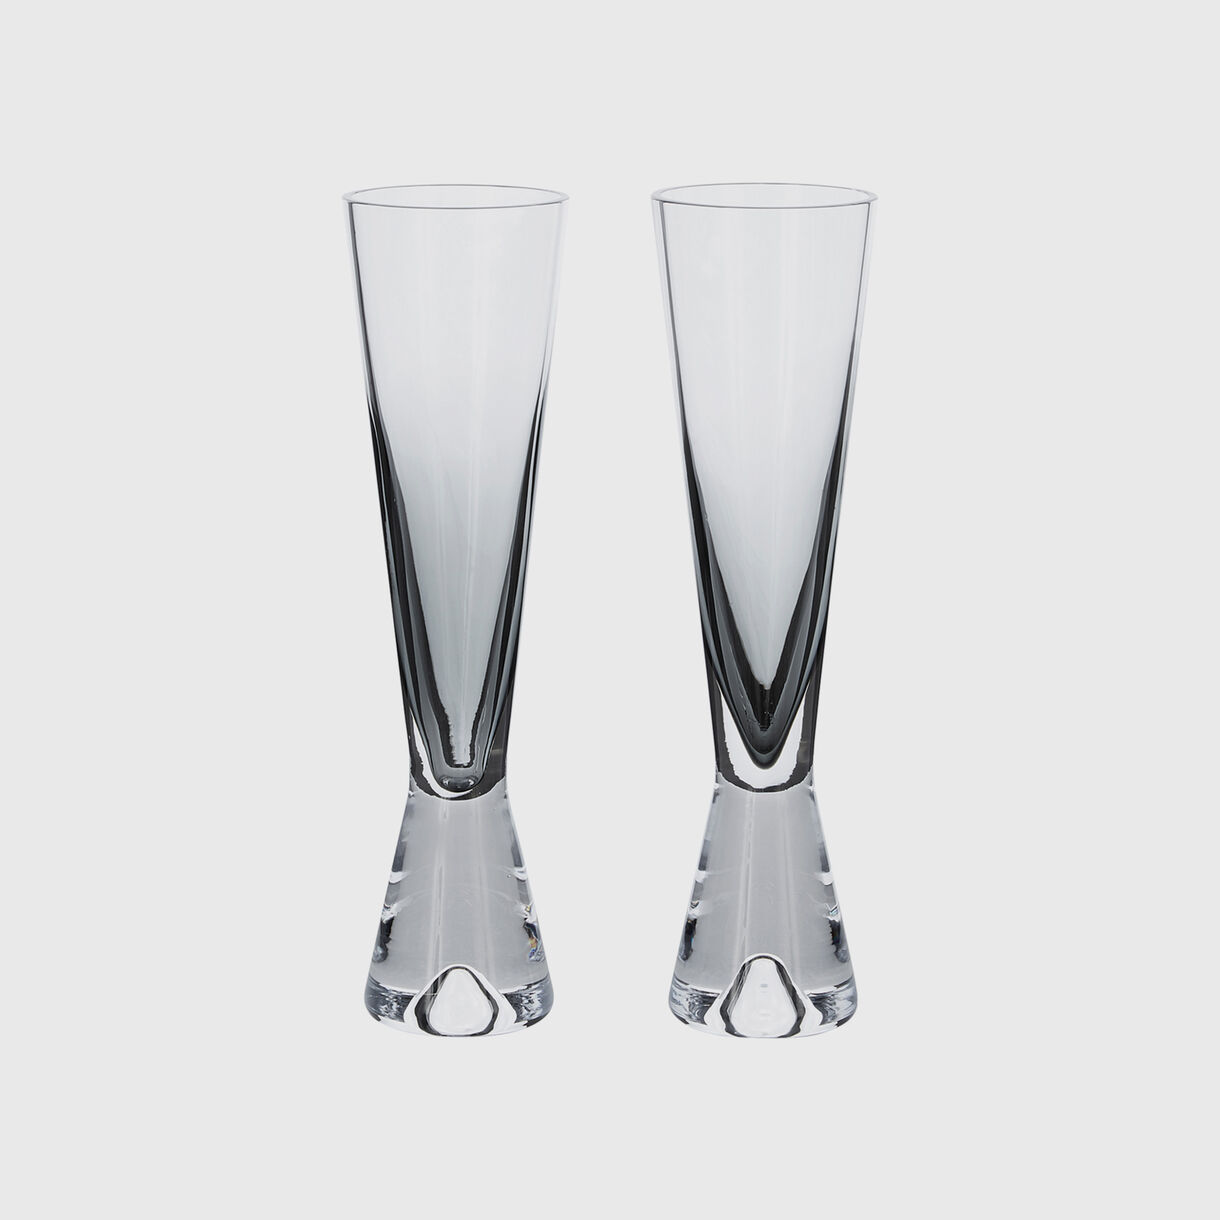 Tank Champagne Glasses, Black